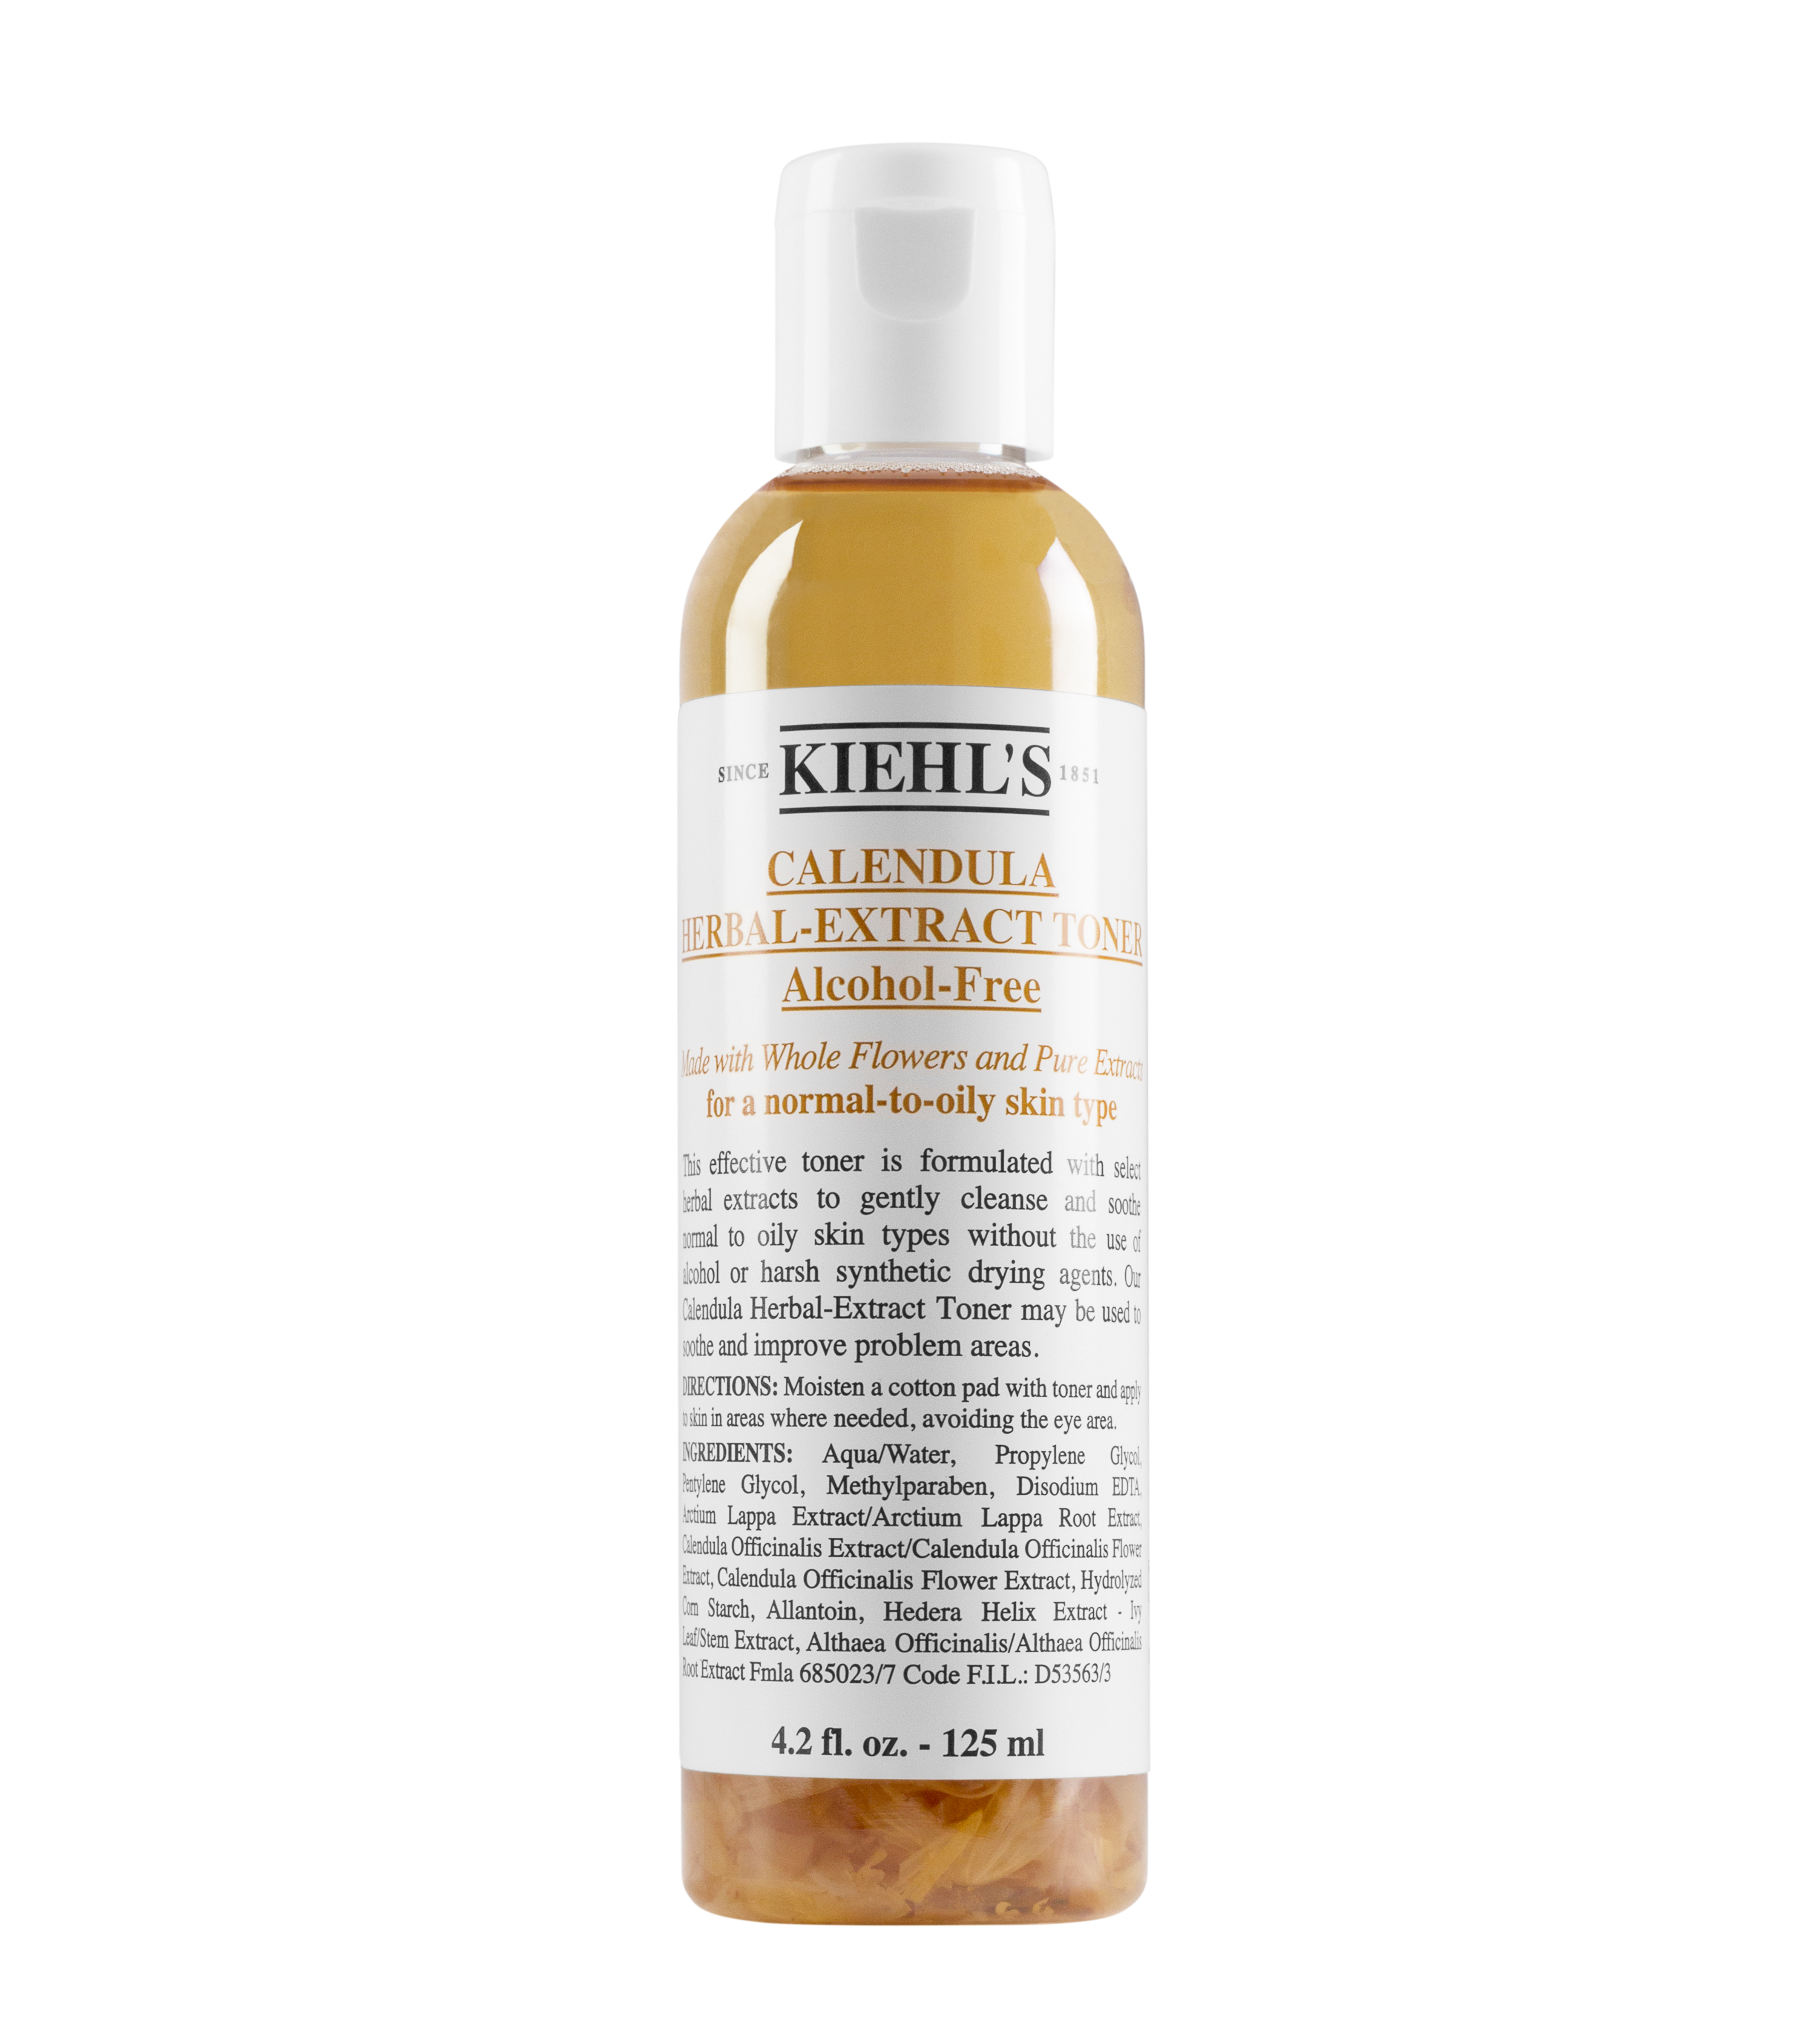 Calendula Herbal Extract Toner Alcohol Free Facial Kiehls Mineral Botanica Acne Care